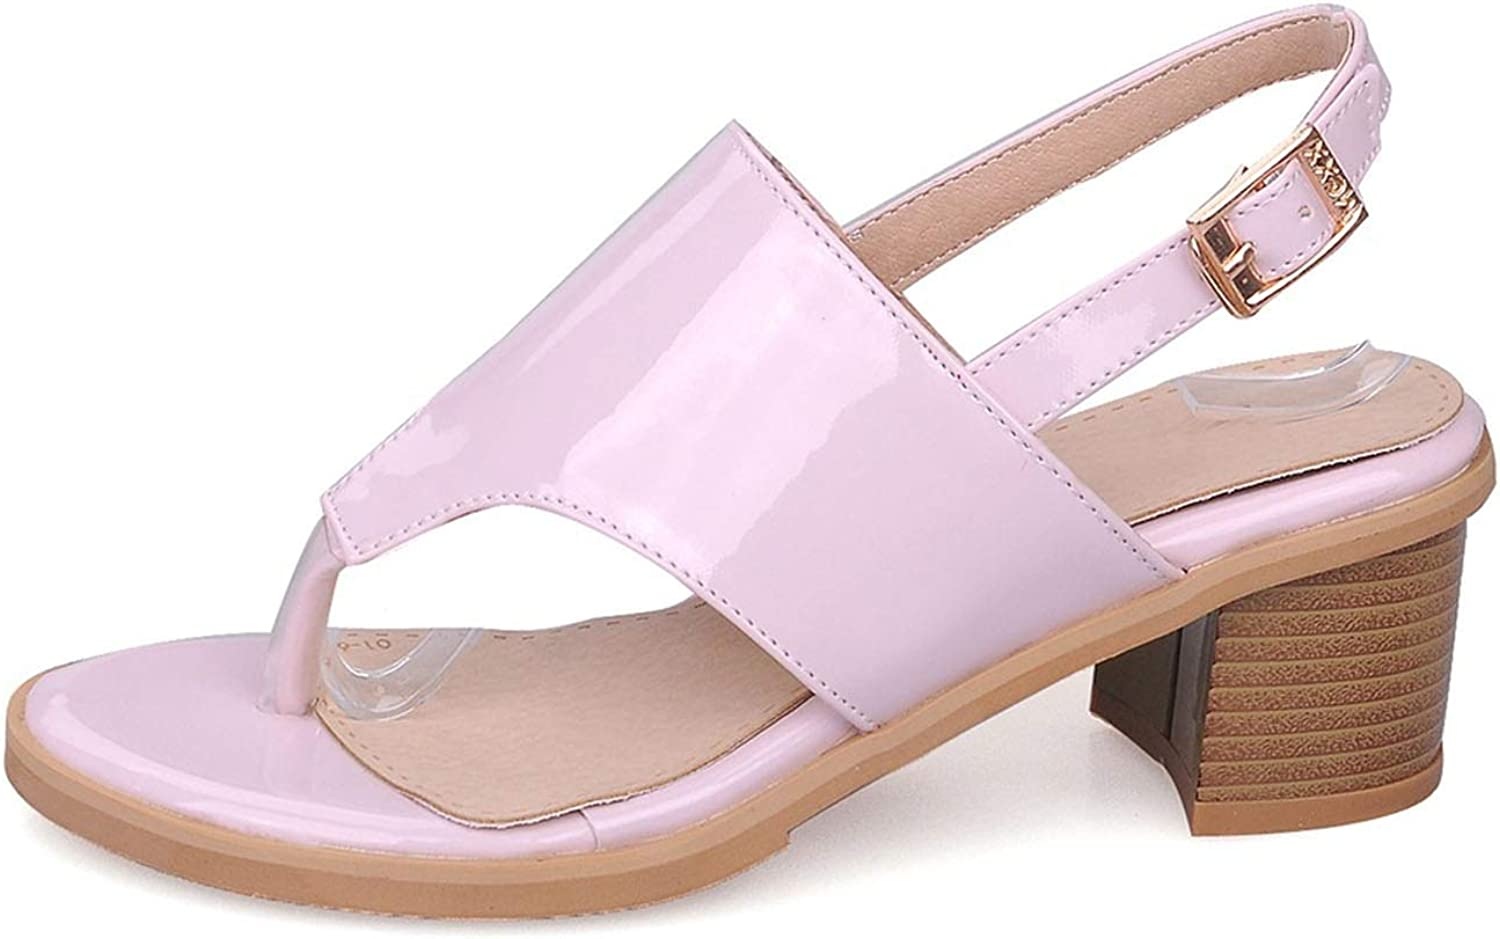 Good-memories pump Plus Size 33-43 Women Sandals med Heels Open Toe pu Leather Buckle Solid color Casual shoes